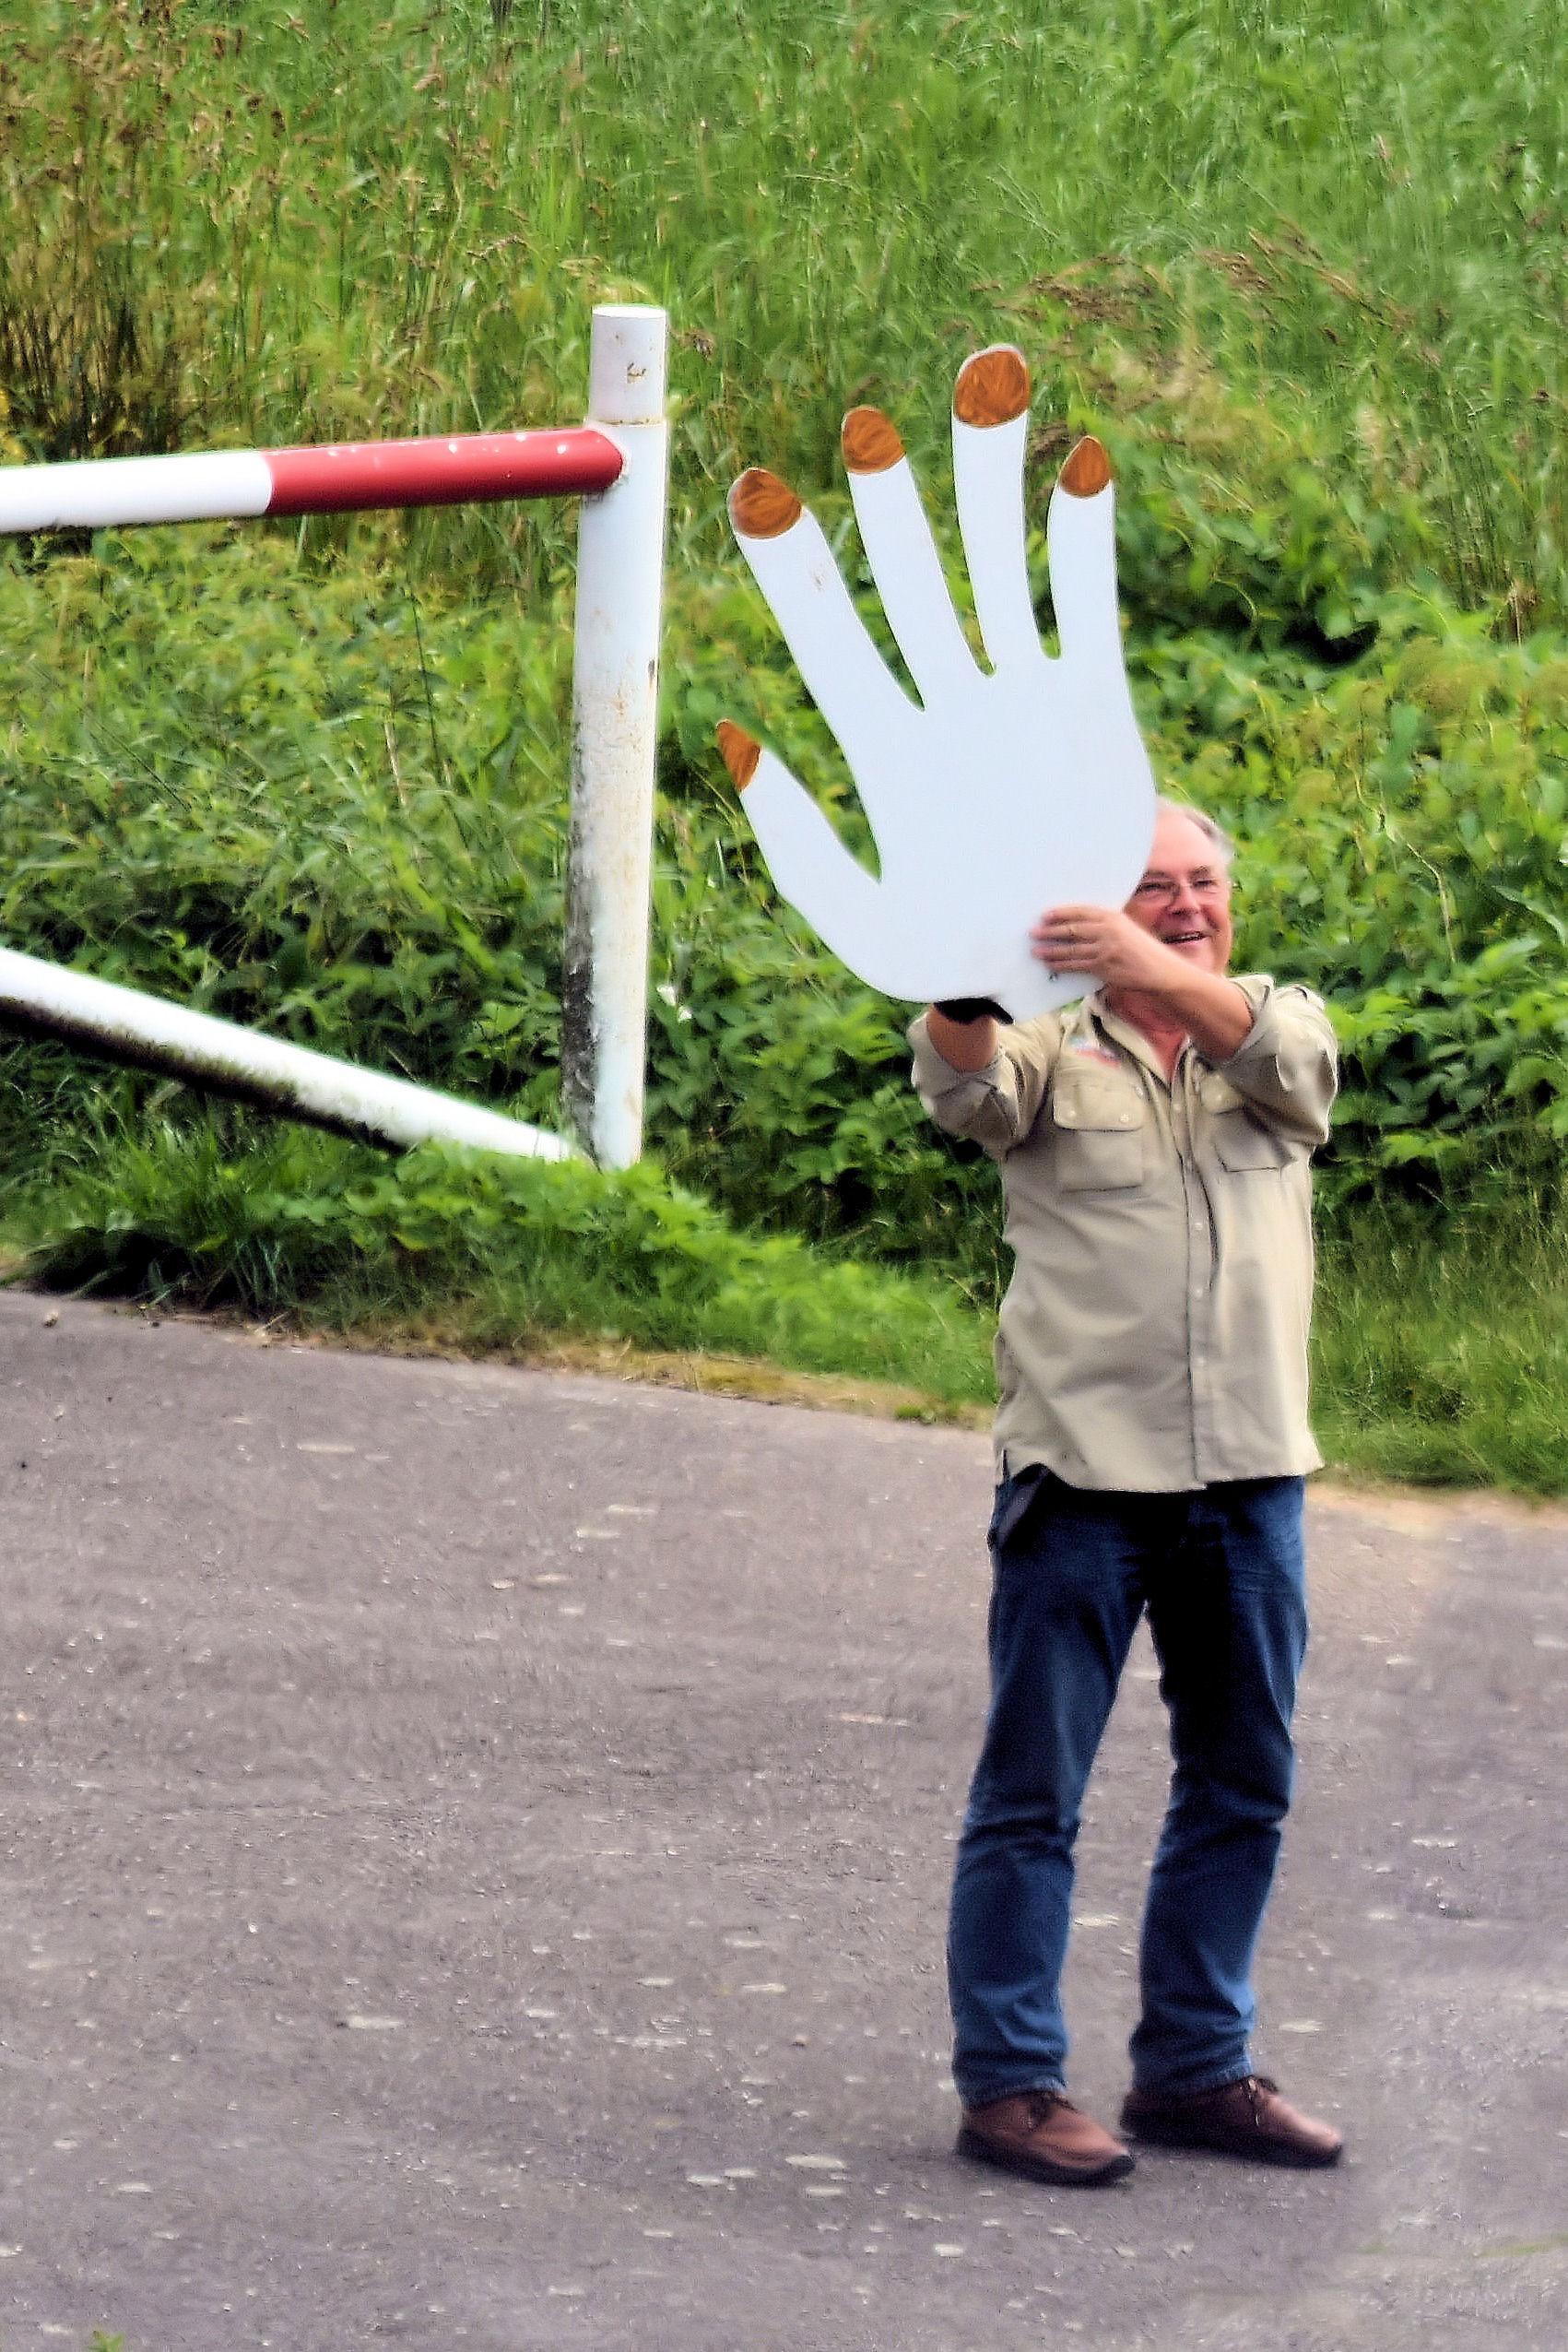 Prepared for an afternoon at the busy Kiel Canal, this friendly man cut out a giant hand for a more effective and noticeable wave.